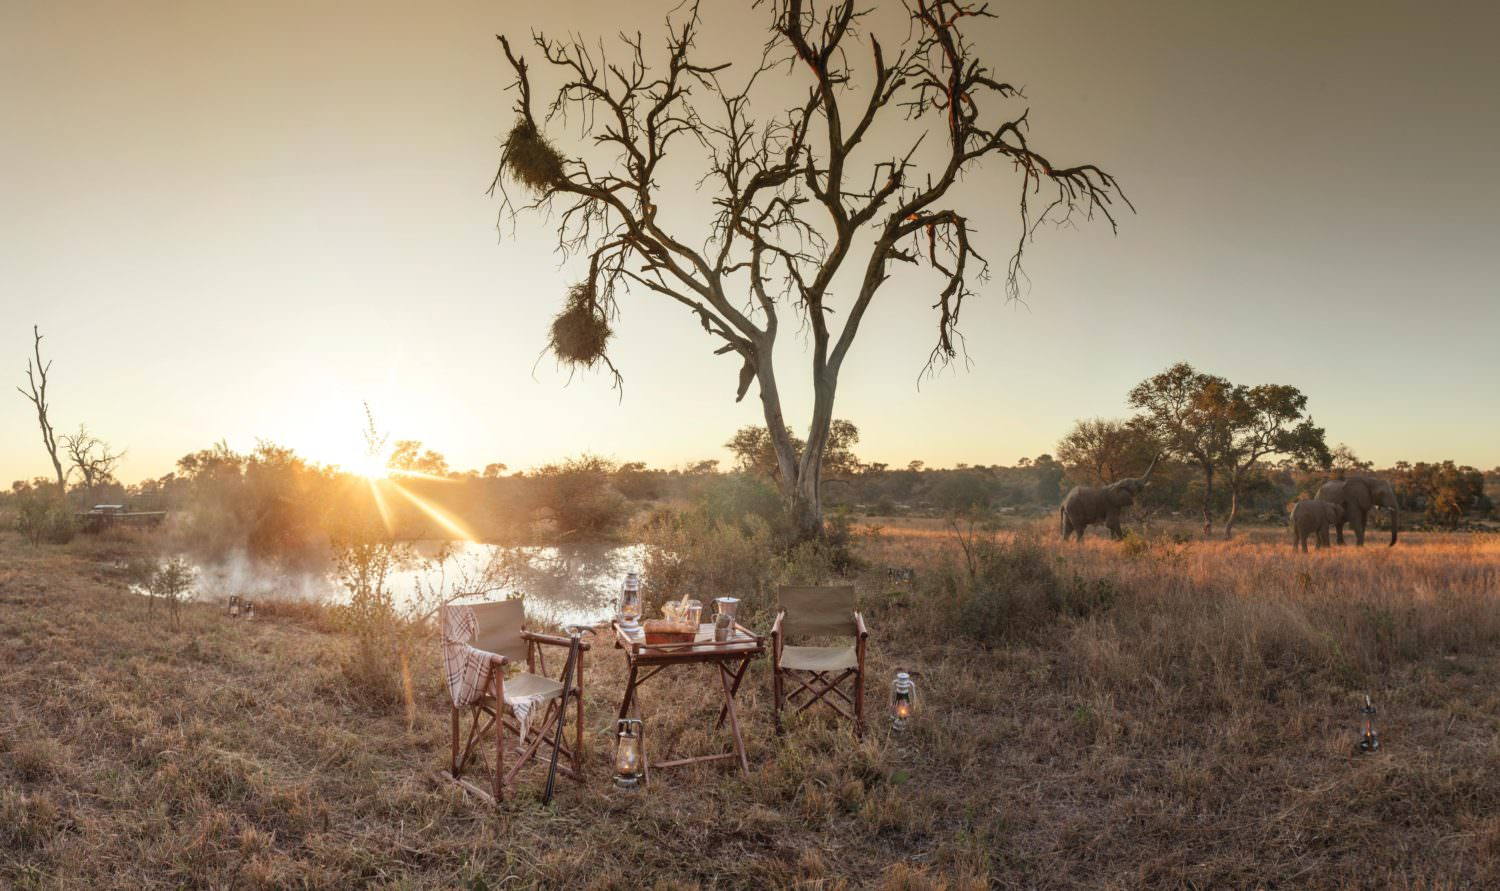 Explore The Timbavati Wilderness With Choice Experiences At Kings Camp